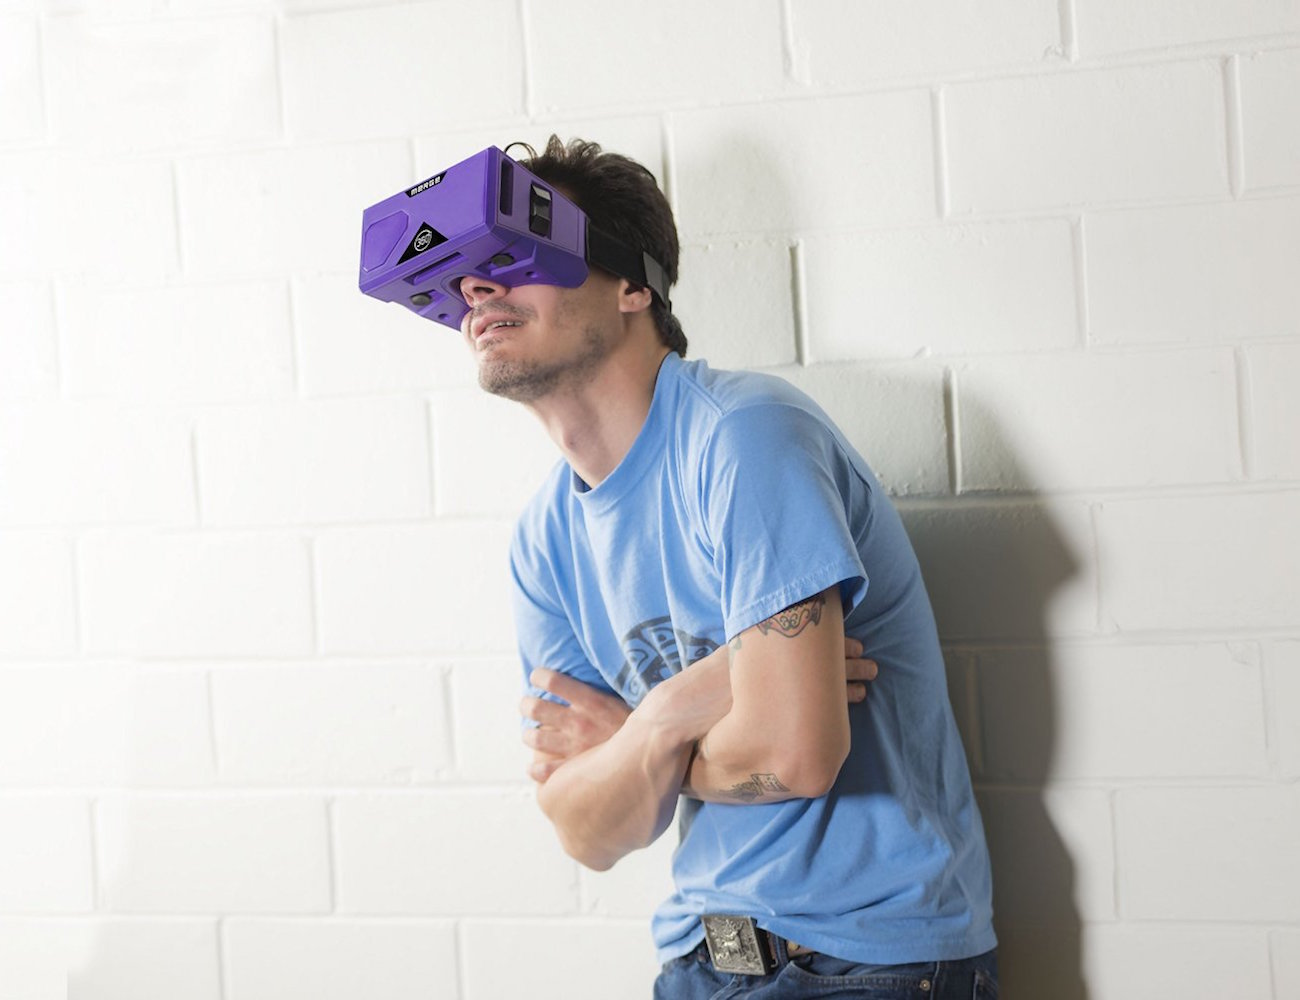 VR Smartphone Goggles by Merge